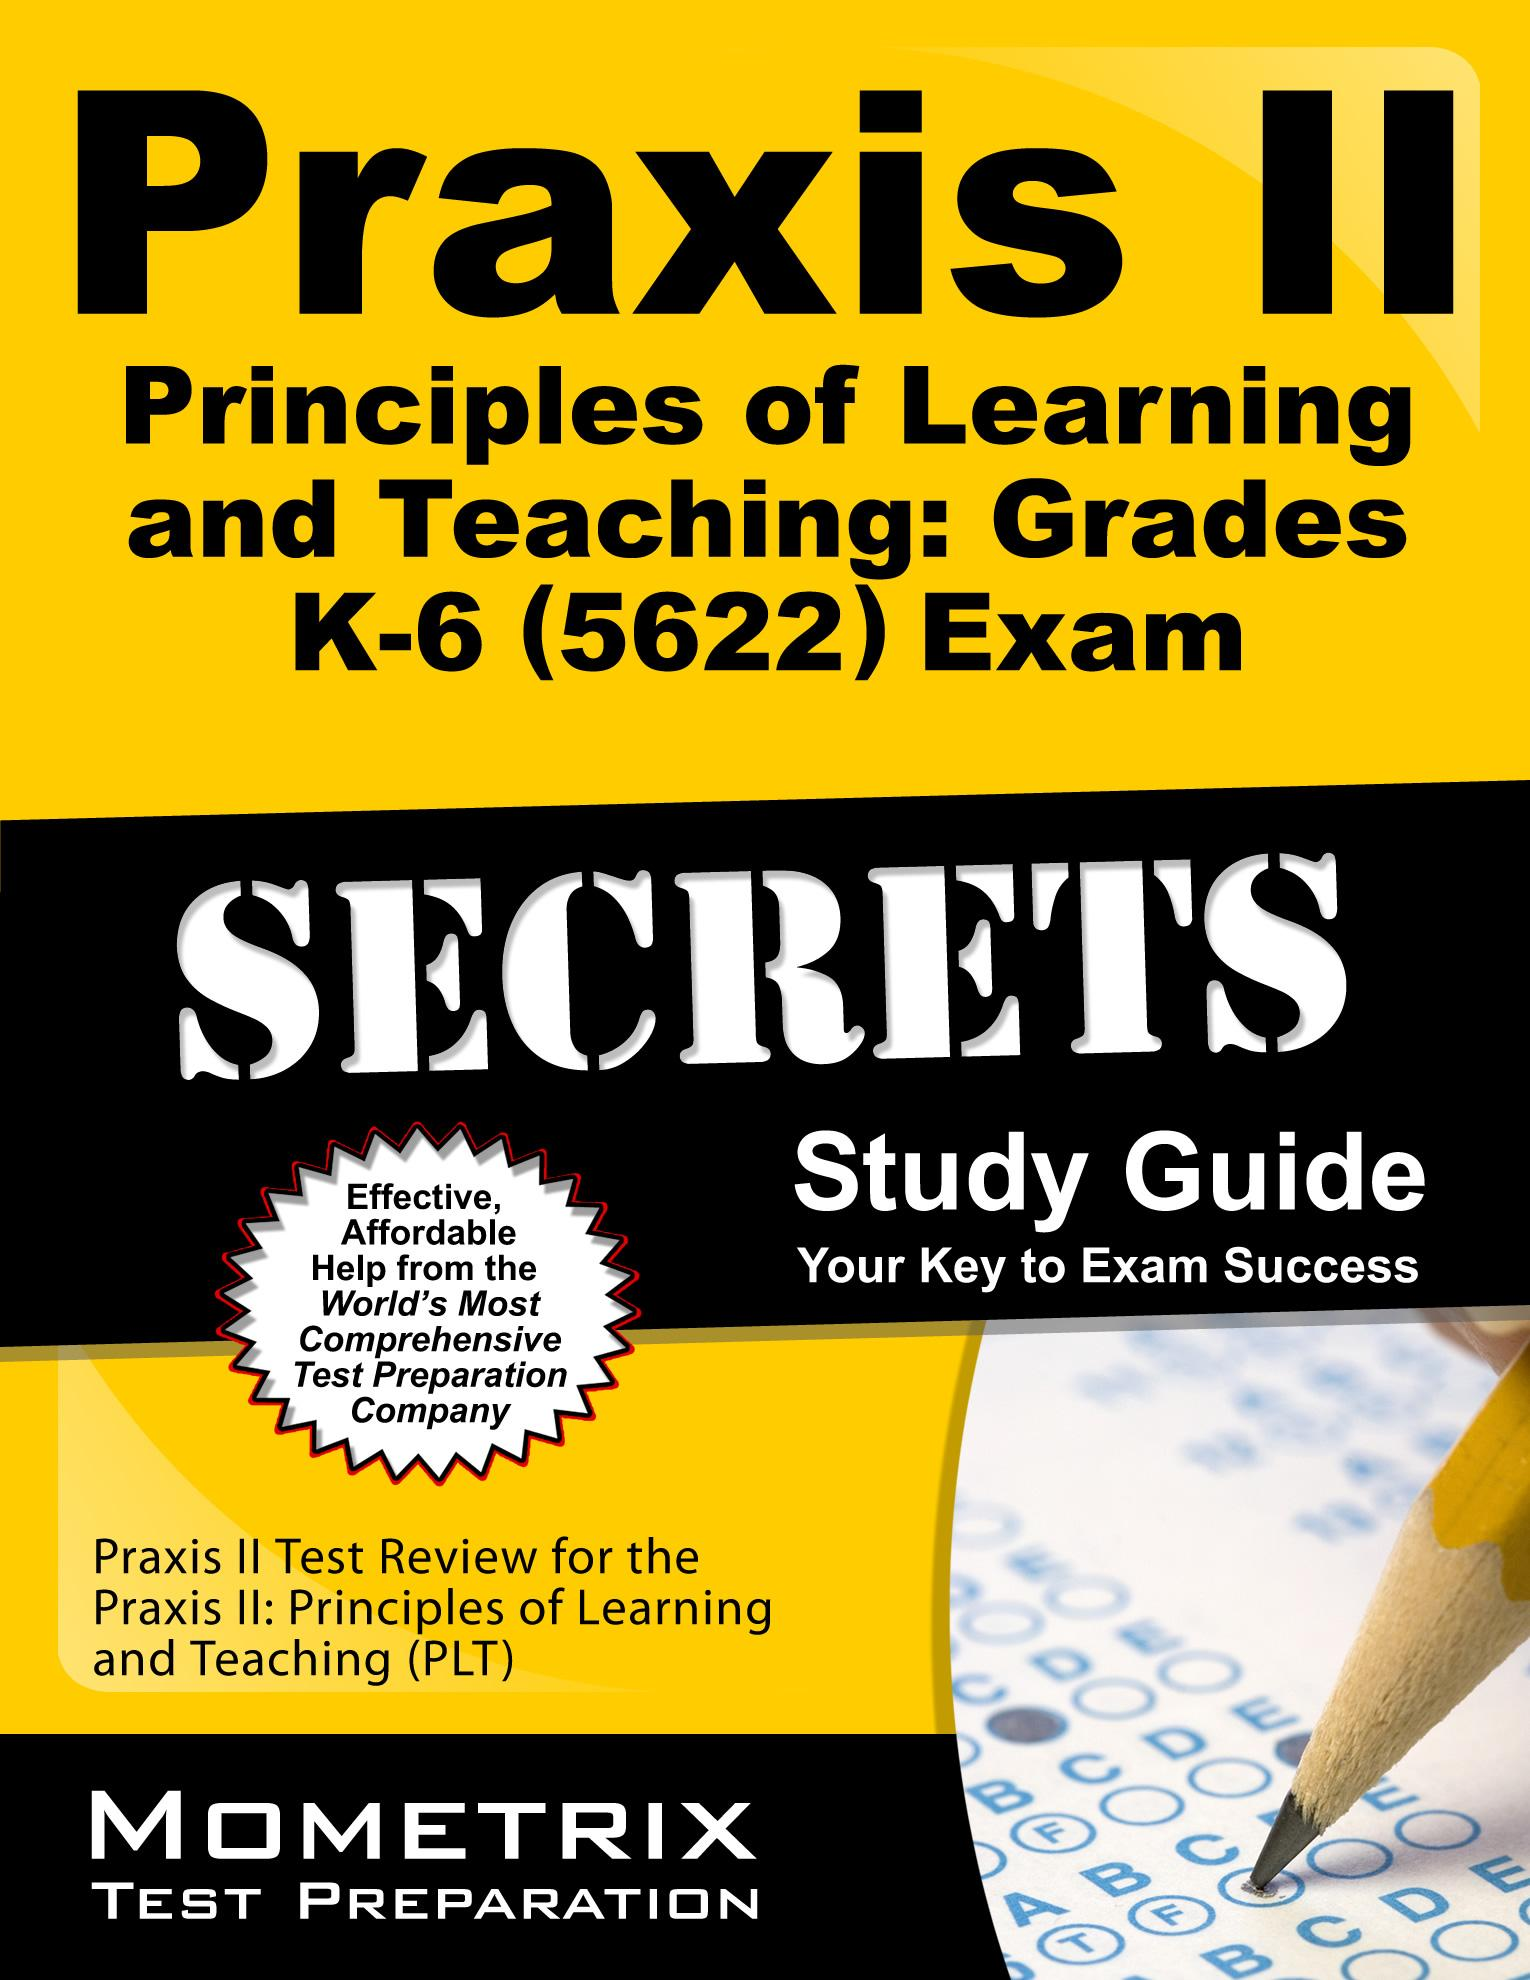 Praxis 2 5015 study guide array praxis principles of learning and teaching k 6 5622 aaa discounts rh aaanational corporateperks fandeluxe Image collections